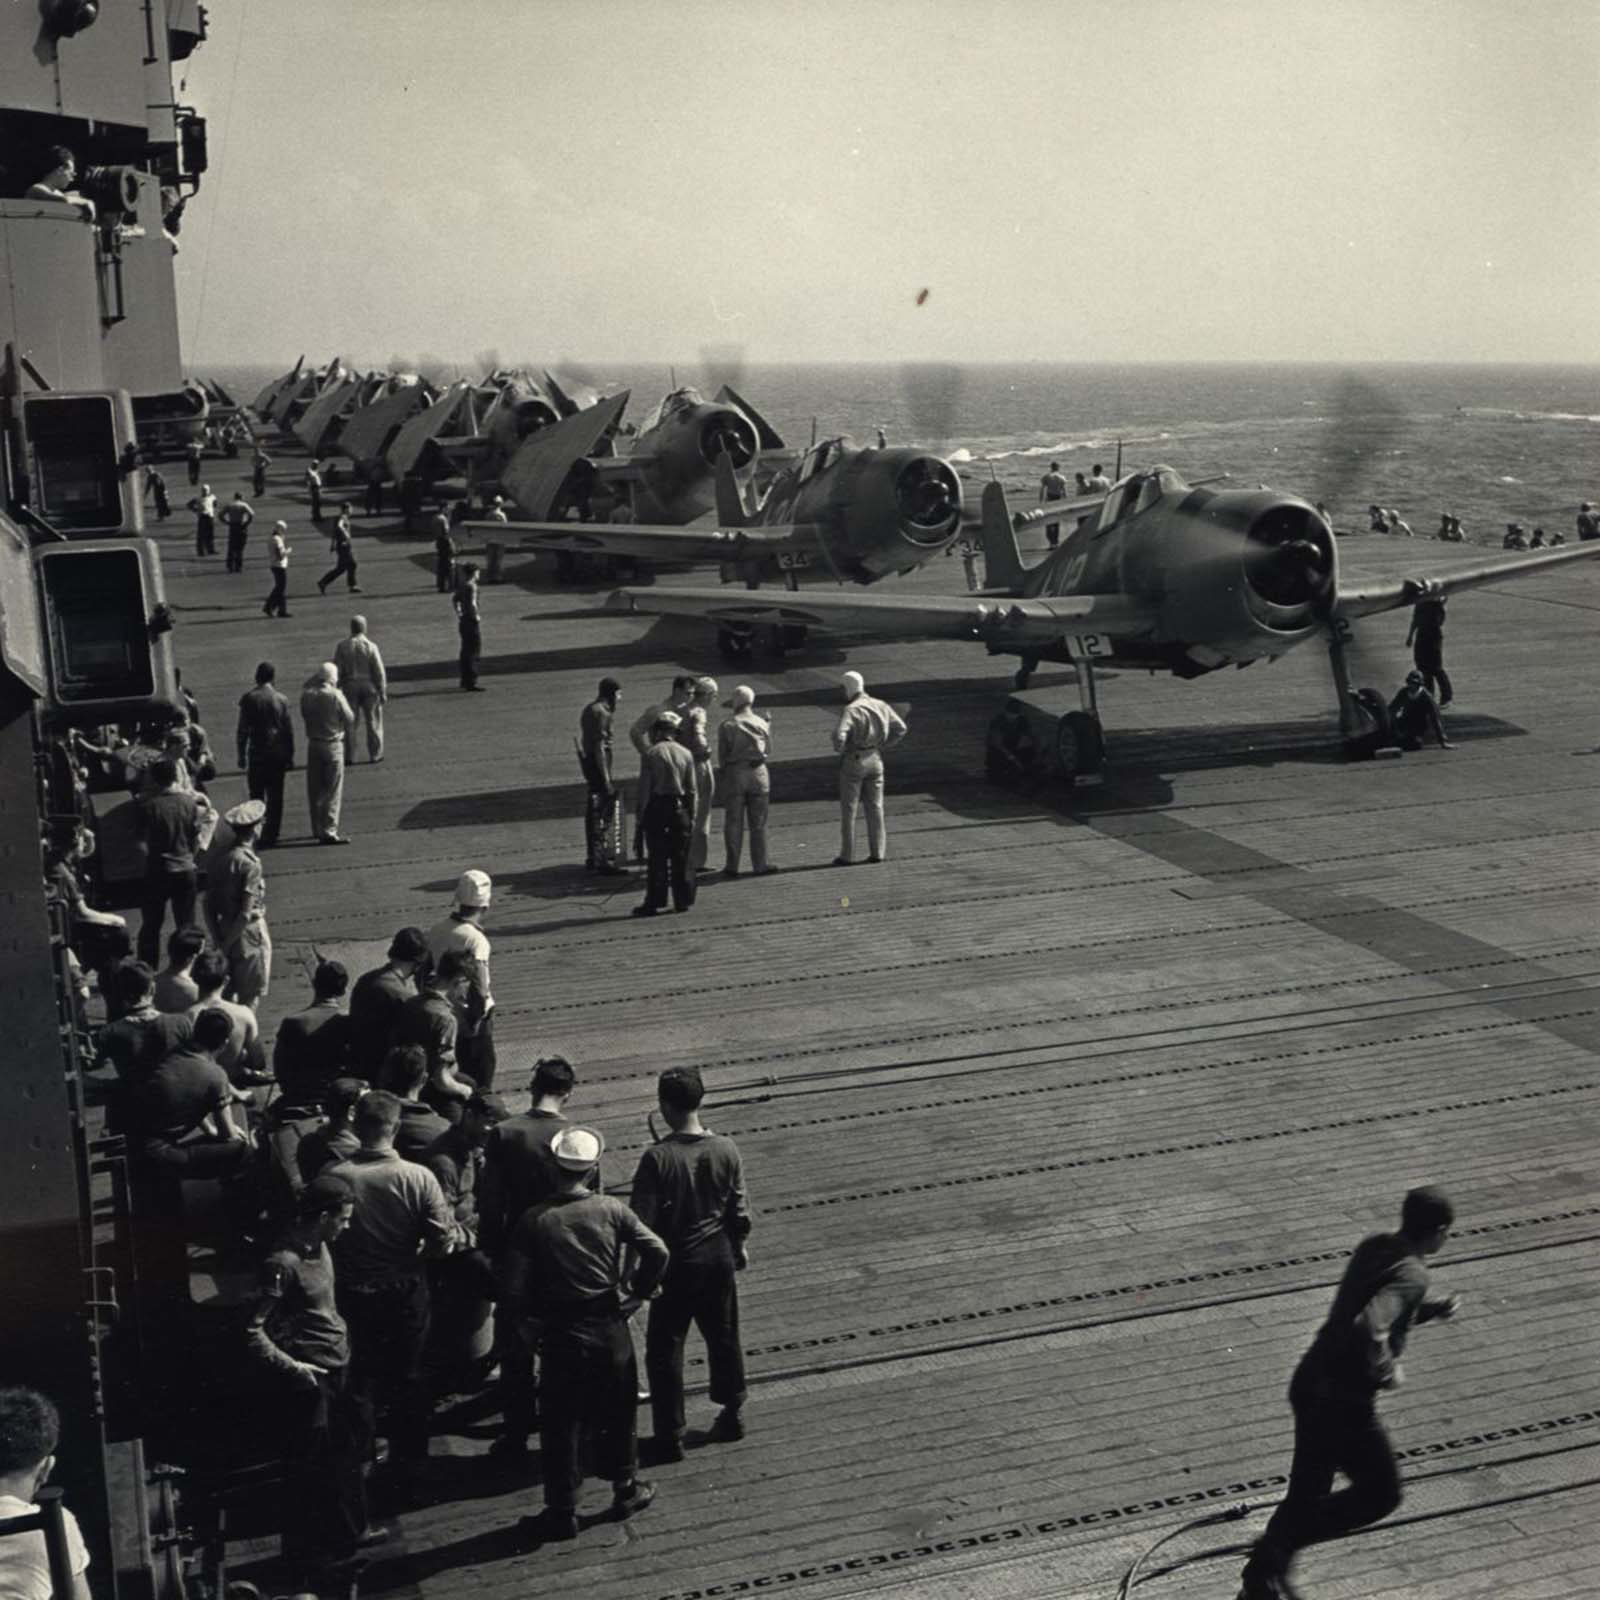 Aircraft Taking Off of Carrier, c. 1943.